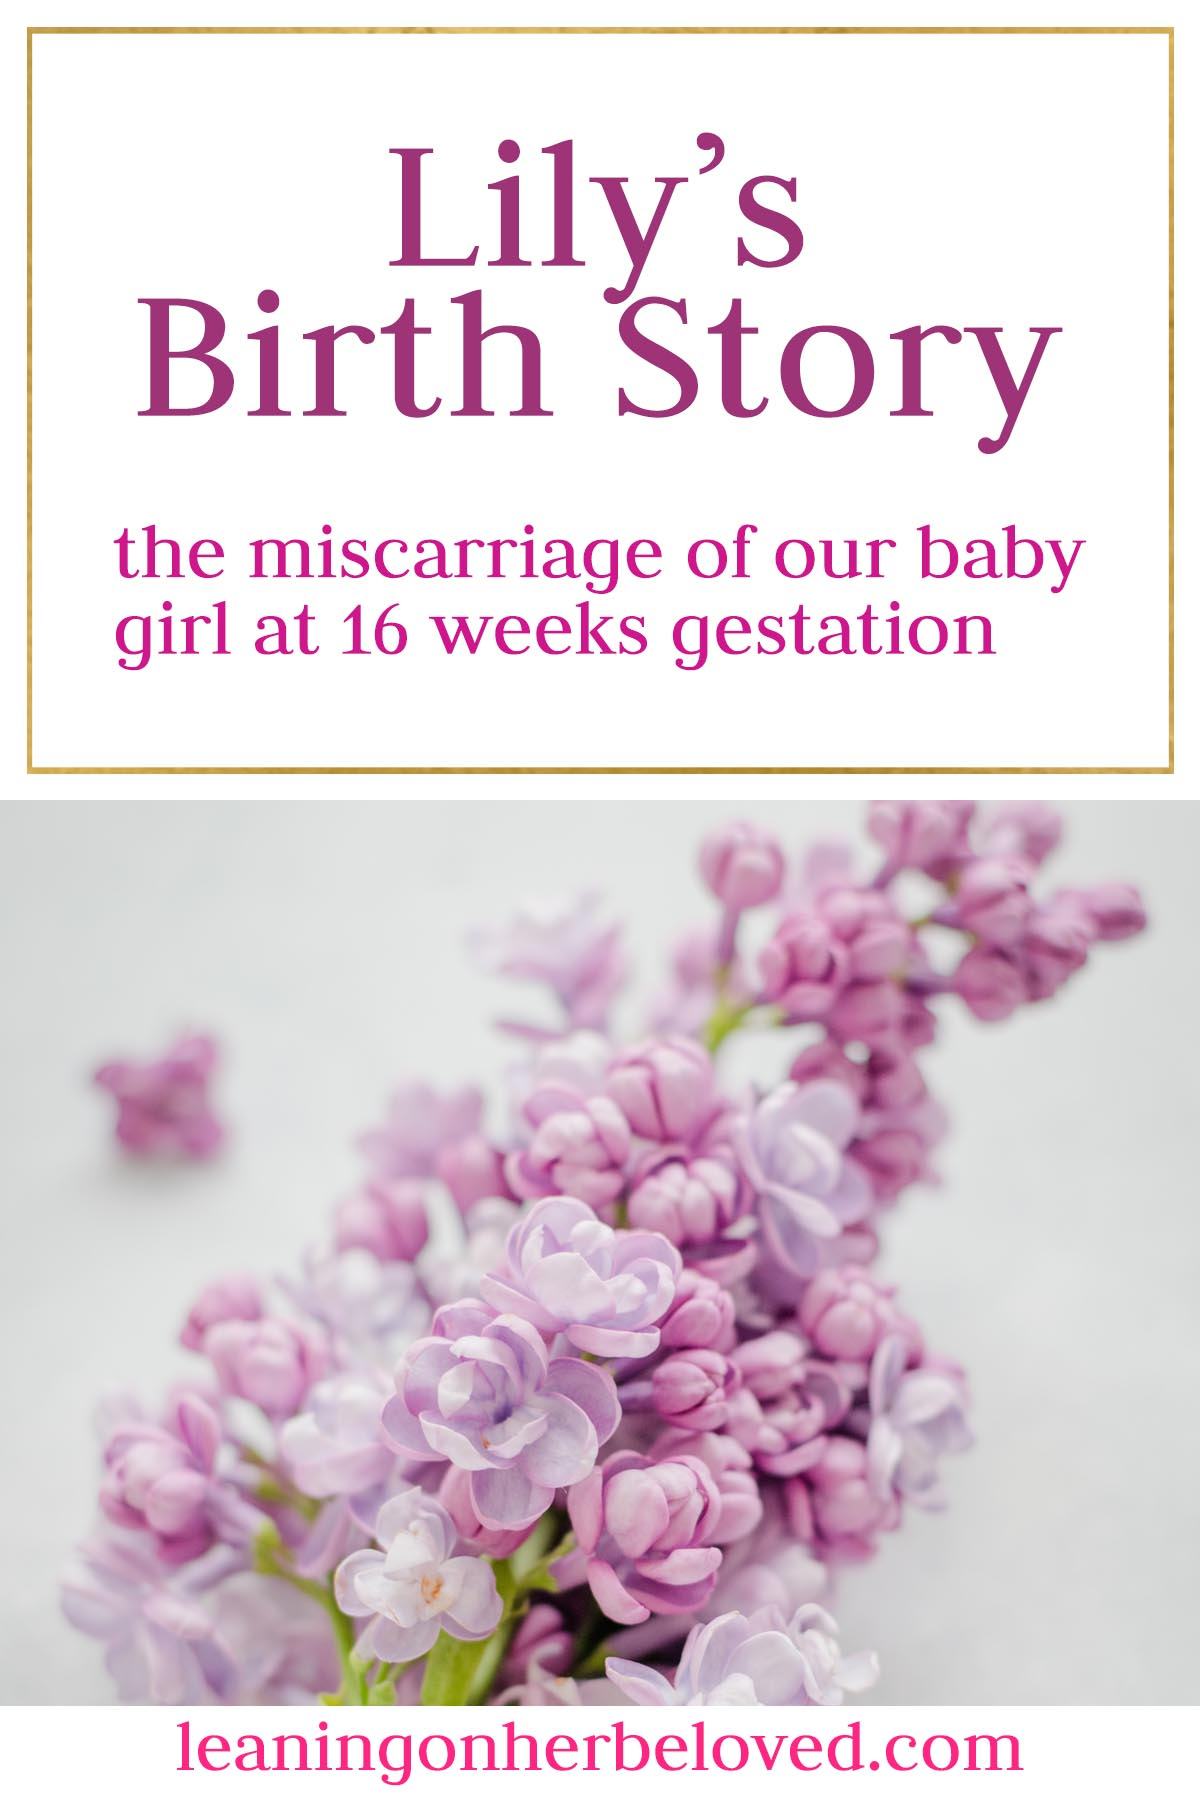 Lily's birth story is about the miscarriage of our baby at 16 weeks gestation | #miscarriage | #birthstory | #traumatic birth